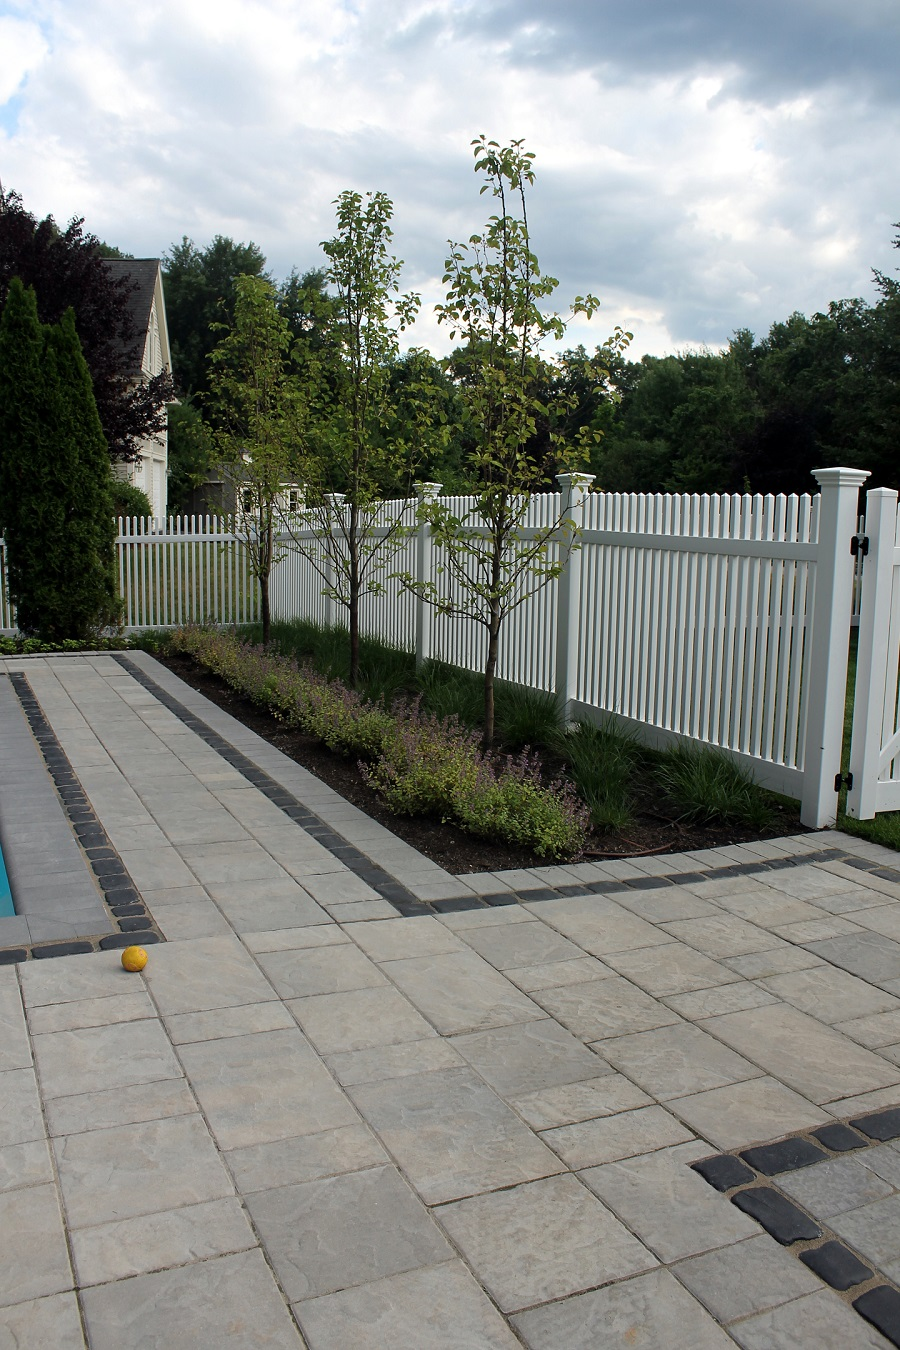 Top quality walkway pavers in Newton, MA